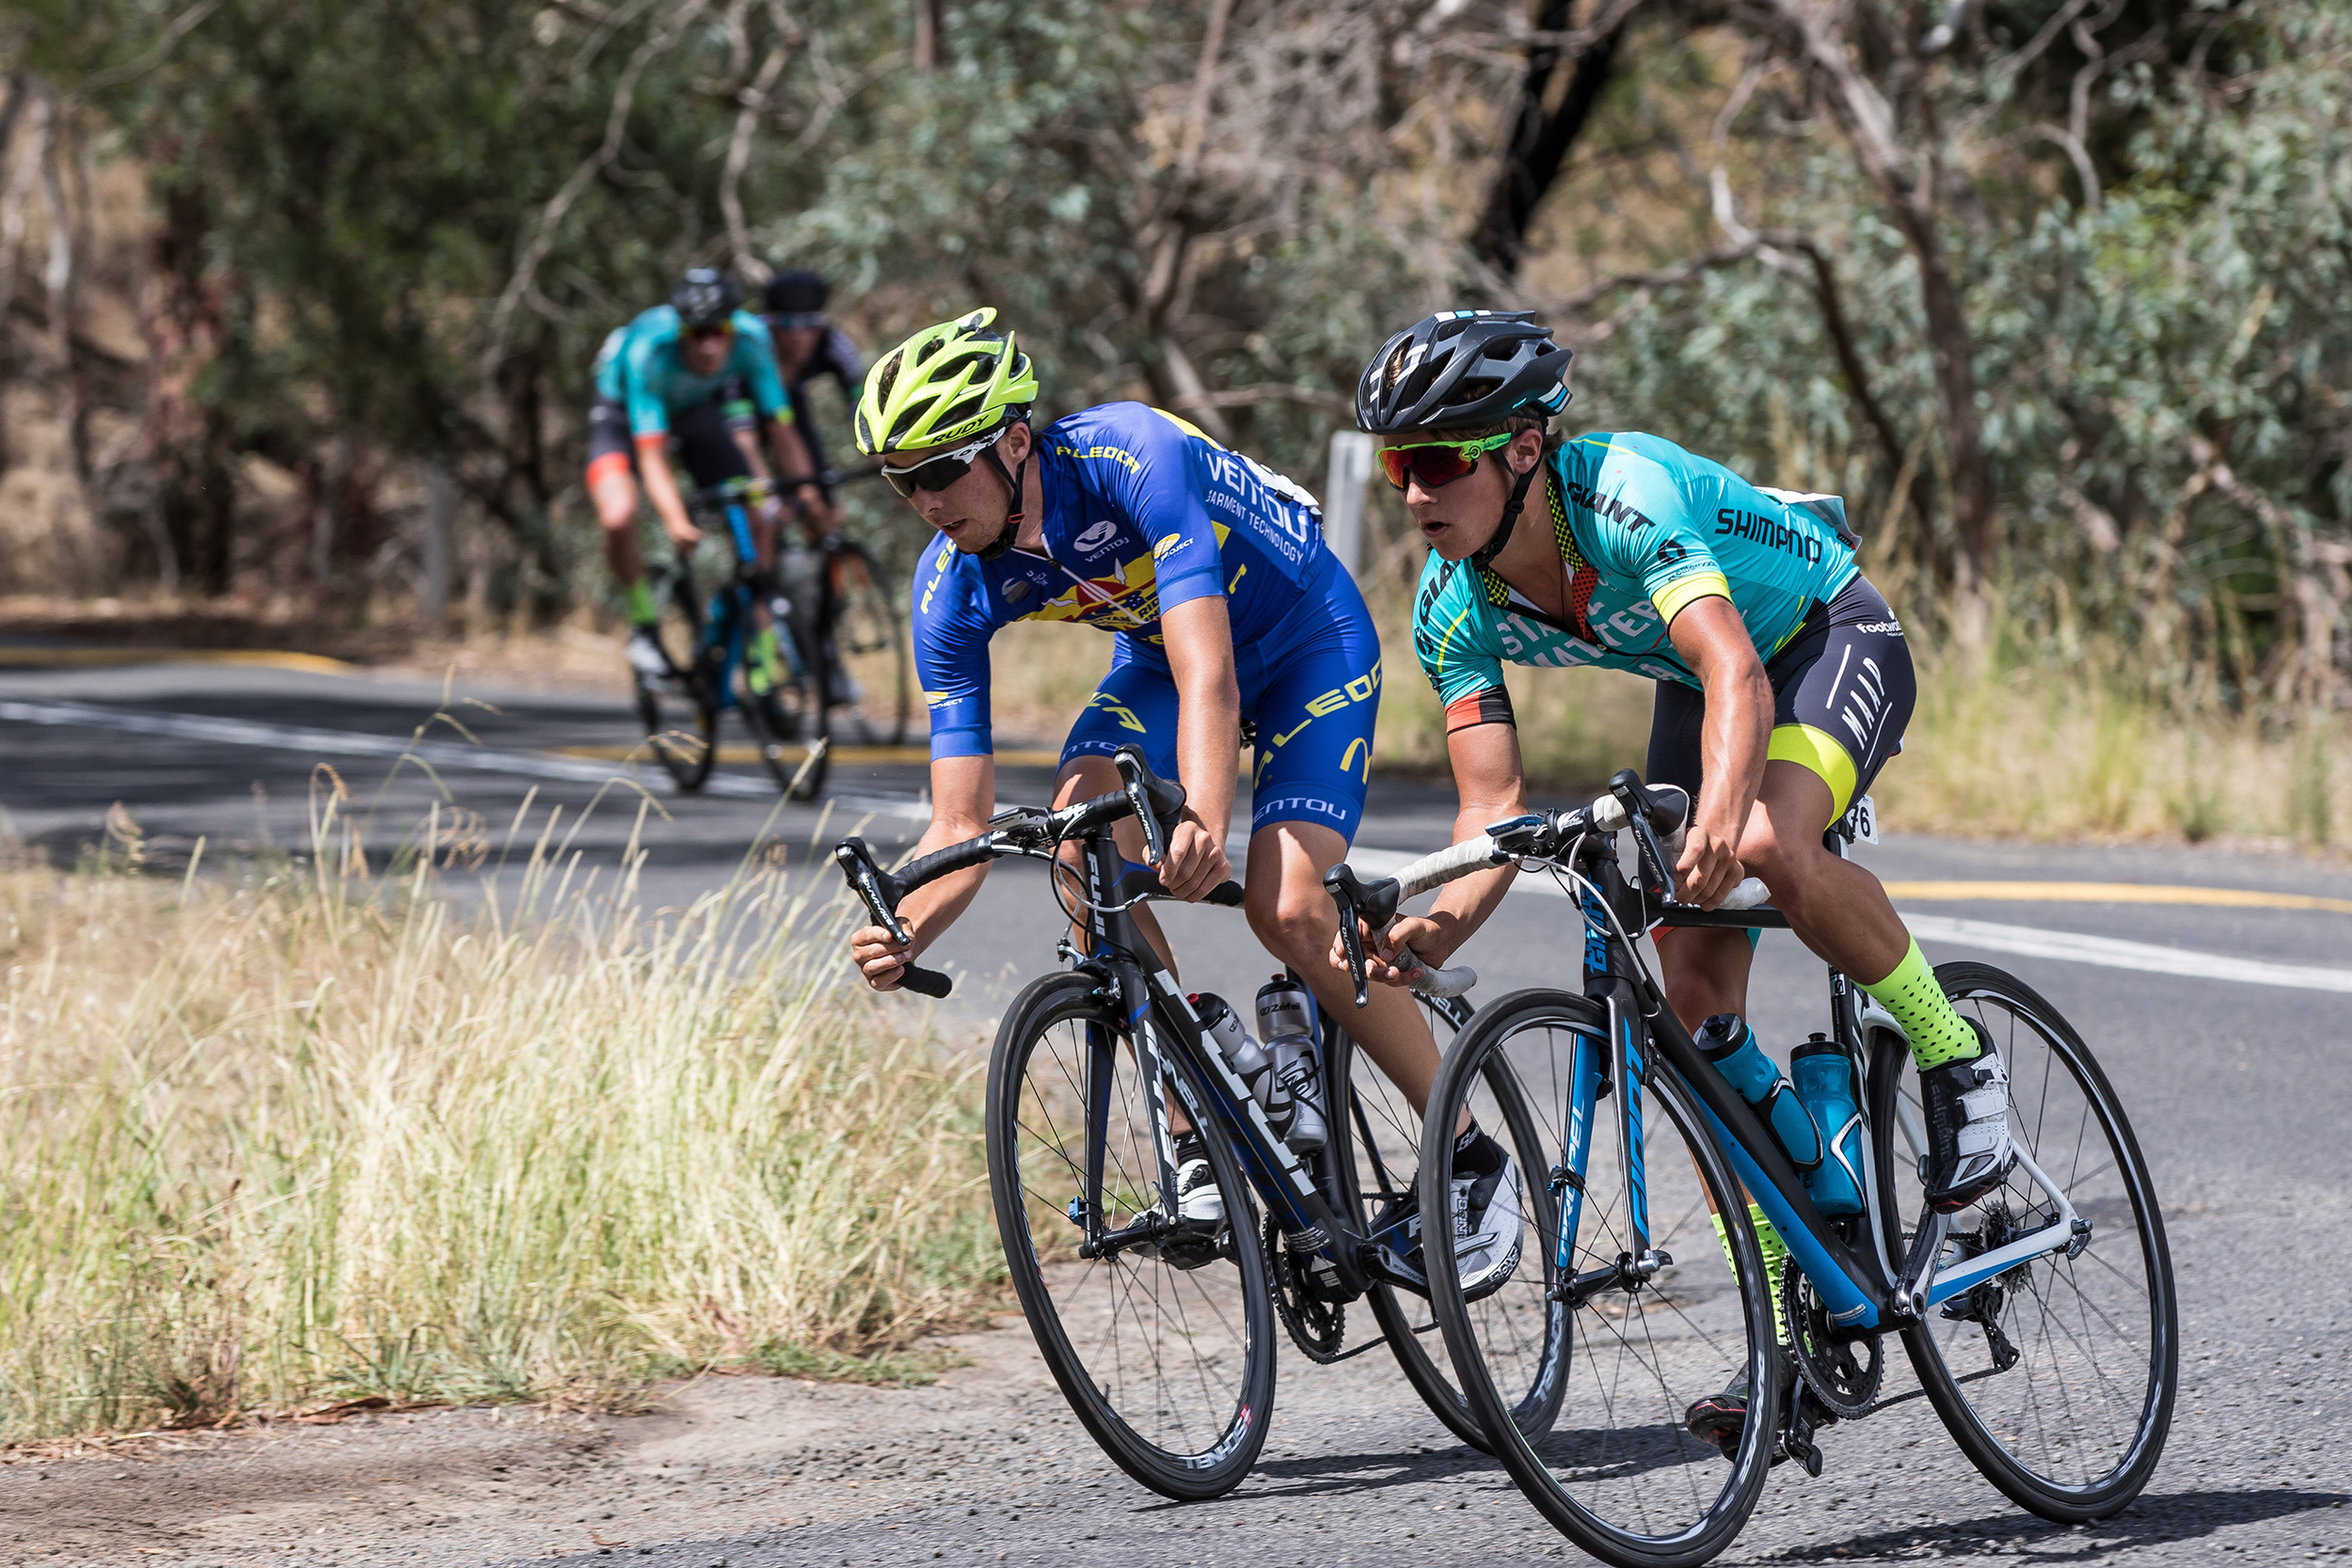 Nick Miller trying to take the lead at Oceania 2016. Image courtesy of PDitty Images.